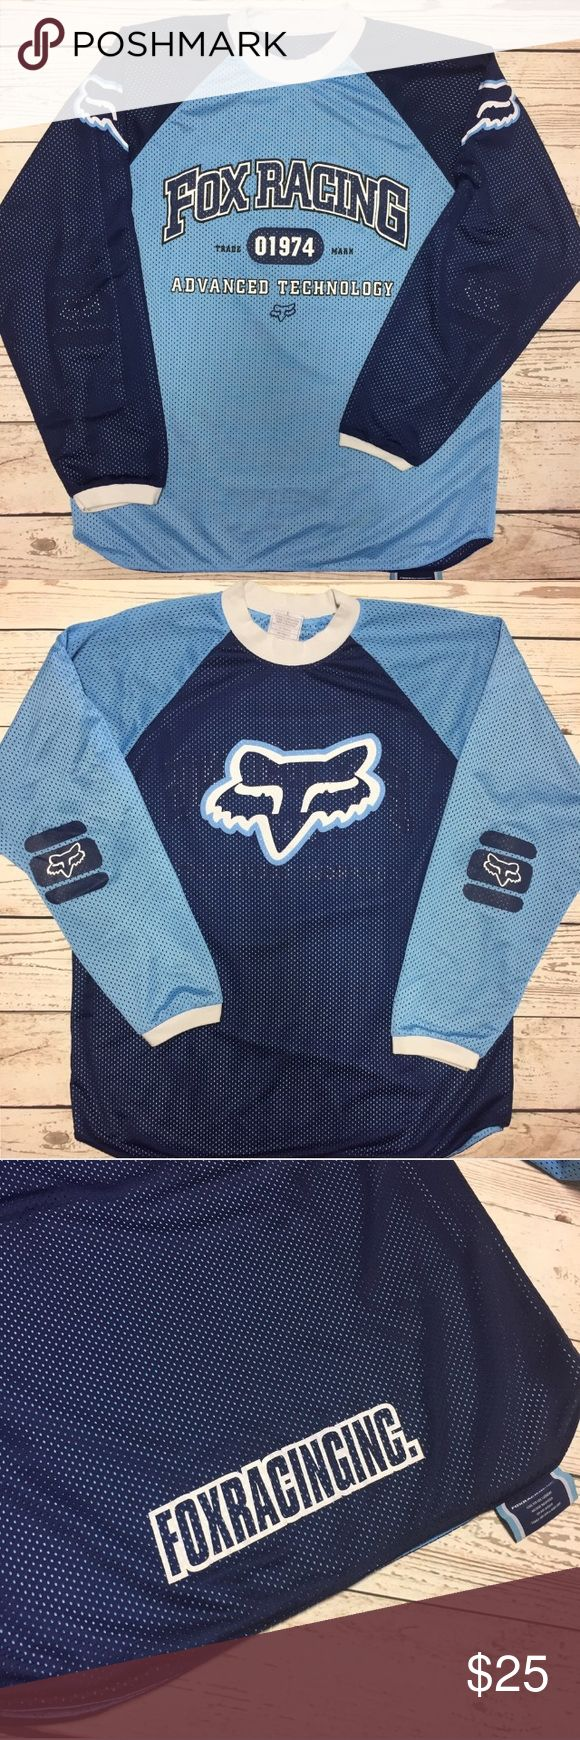 Men's Reversible Fox Racing Jersey Men's size Large reversible jersey. Colors are navy and baby blue. In good used condition. No stains or tears. ✔️ Fox Shirts